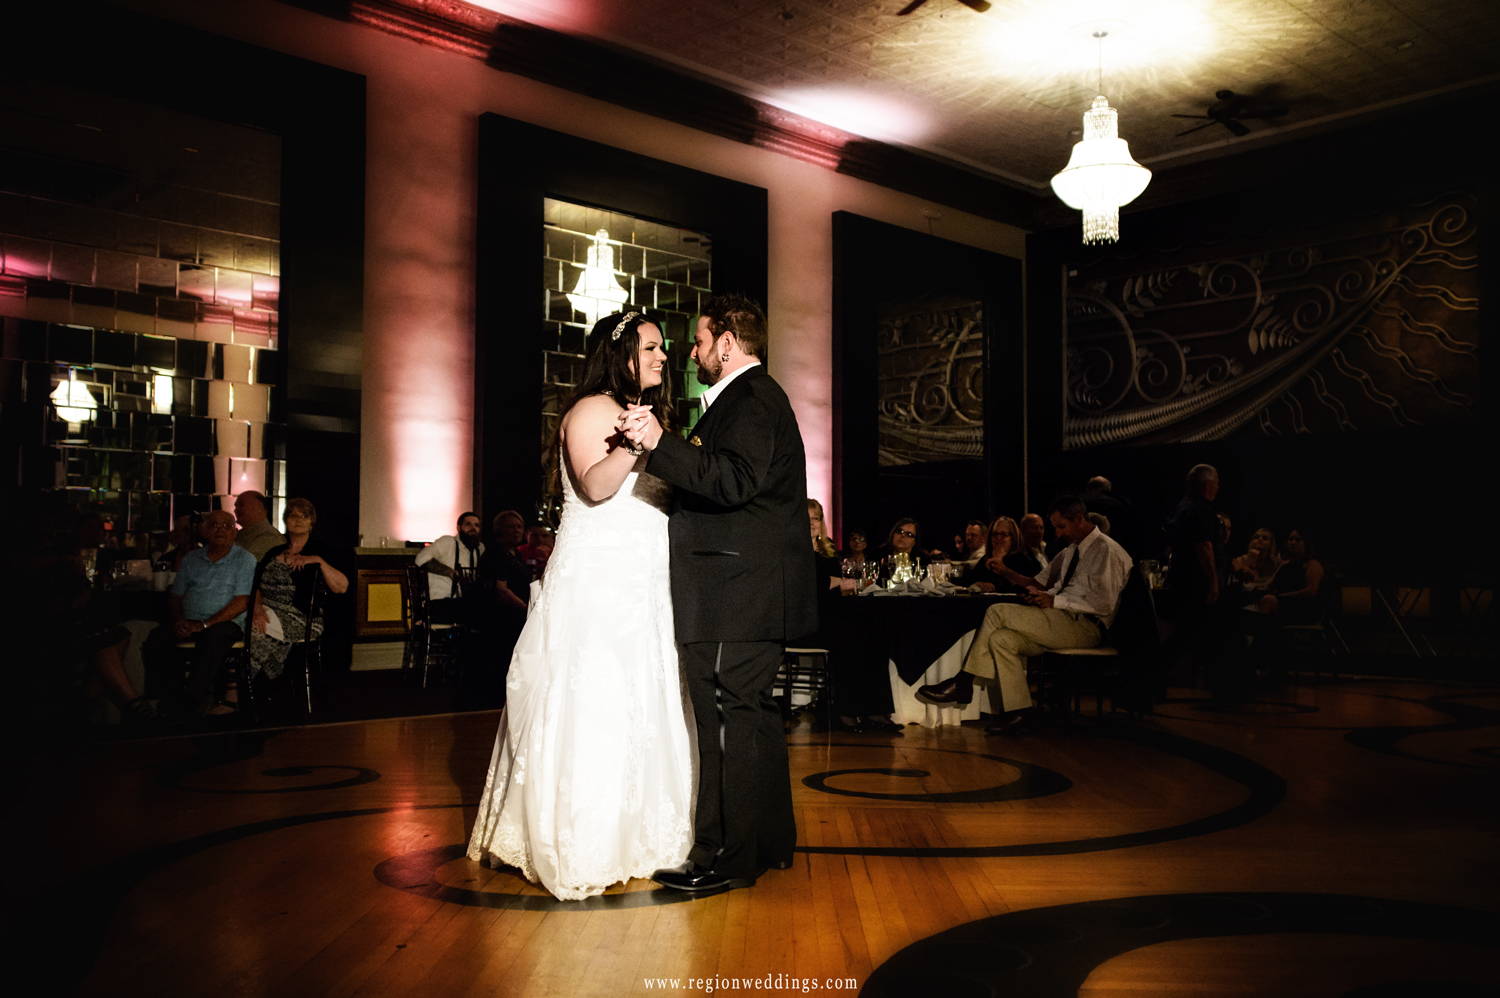 First dance for the bride and groom at The Allure ballroom.